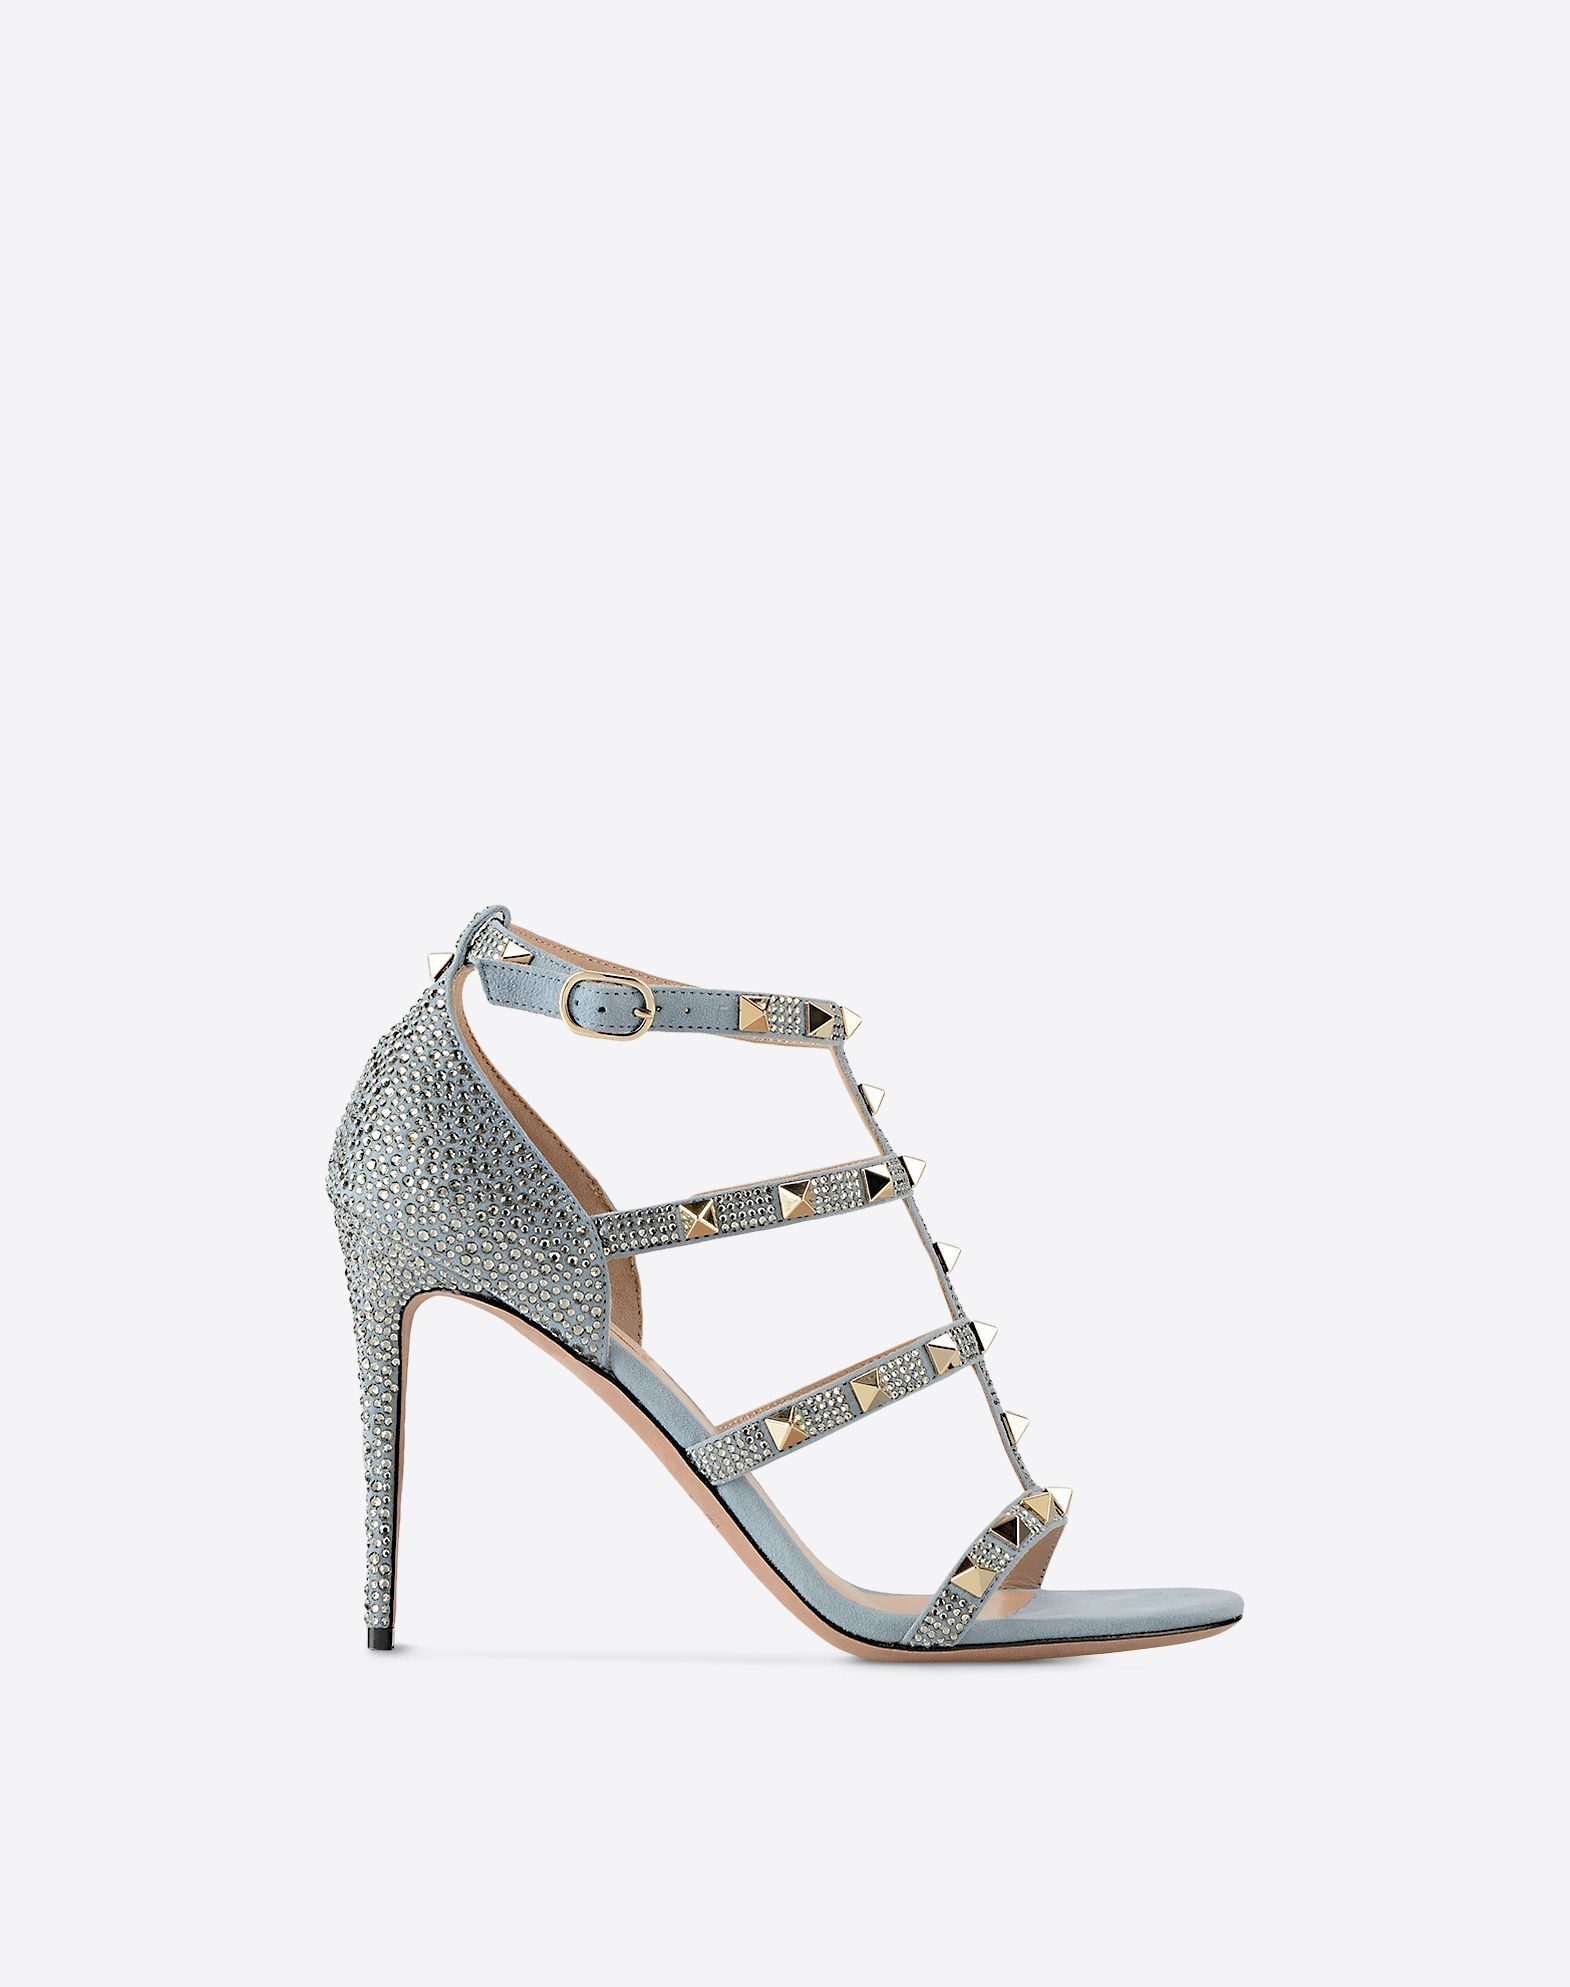 VALENTINO☆絶対欲しい*ROCKSTUD SANDAL WITH CRYSTALS*サンダル